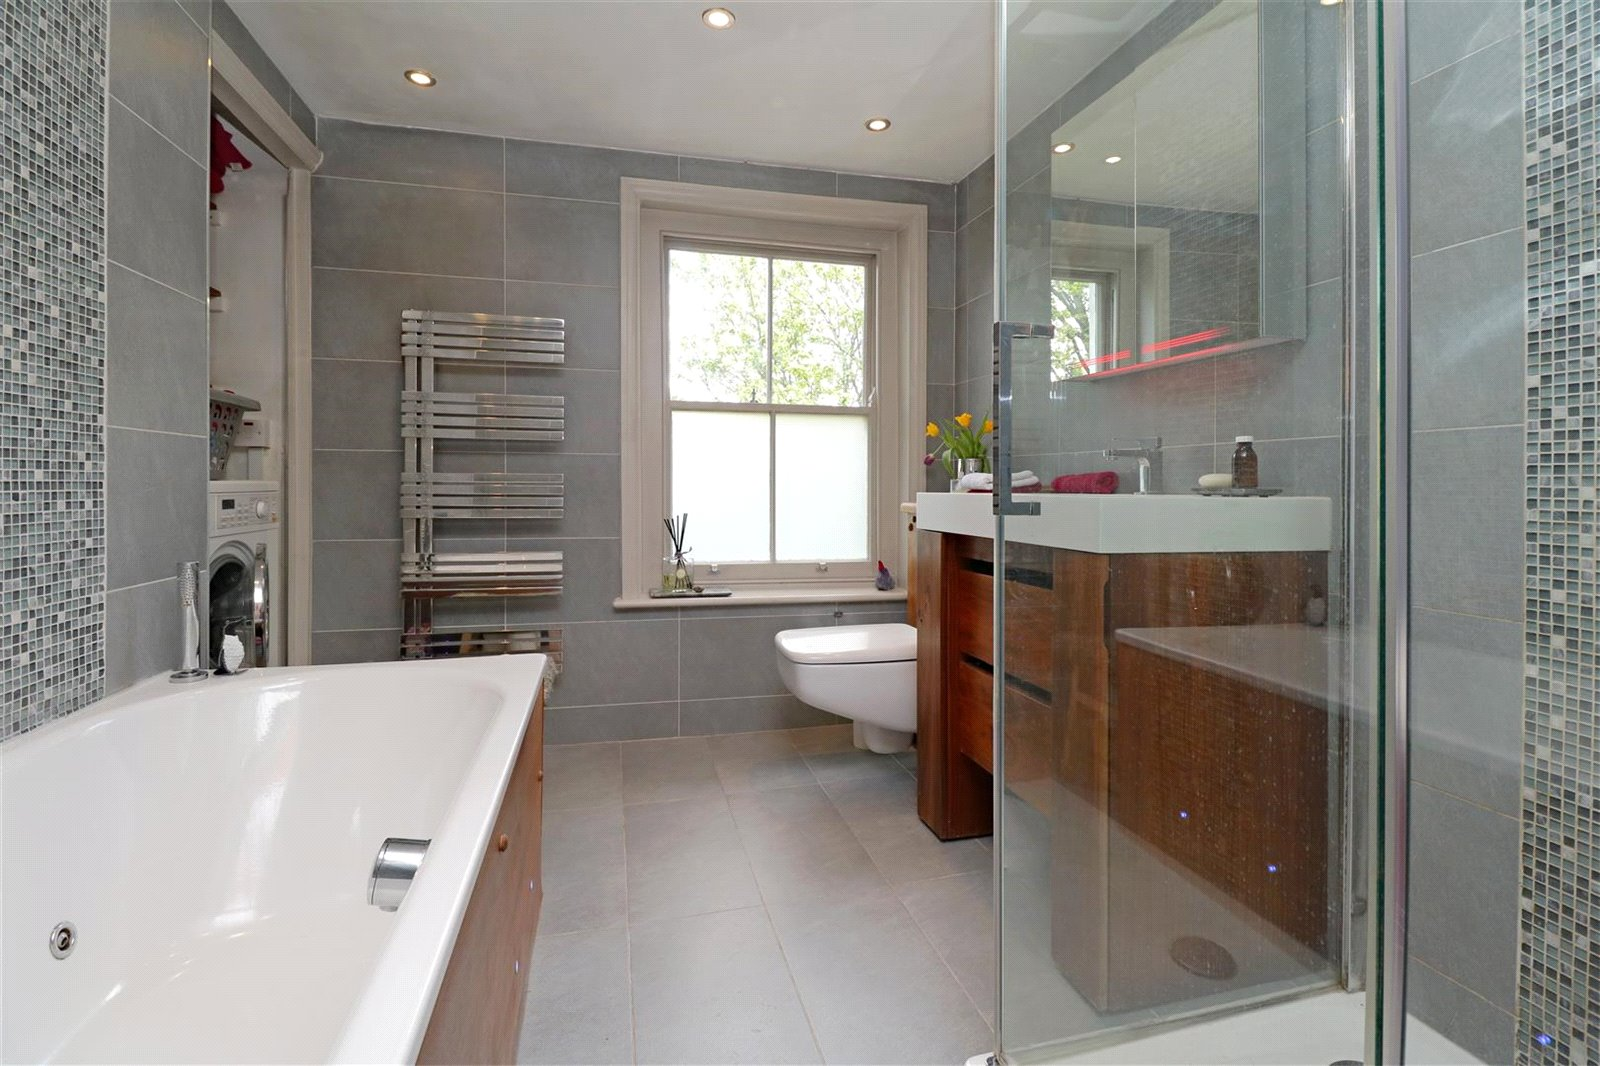 House for sale in Highgate, N6 5HX  - Property Image 10